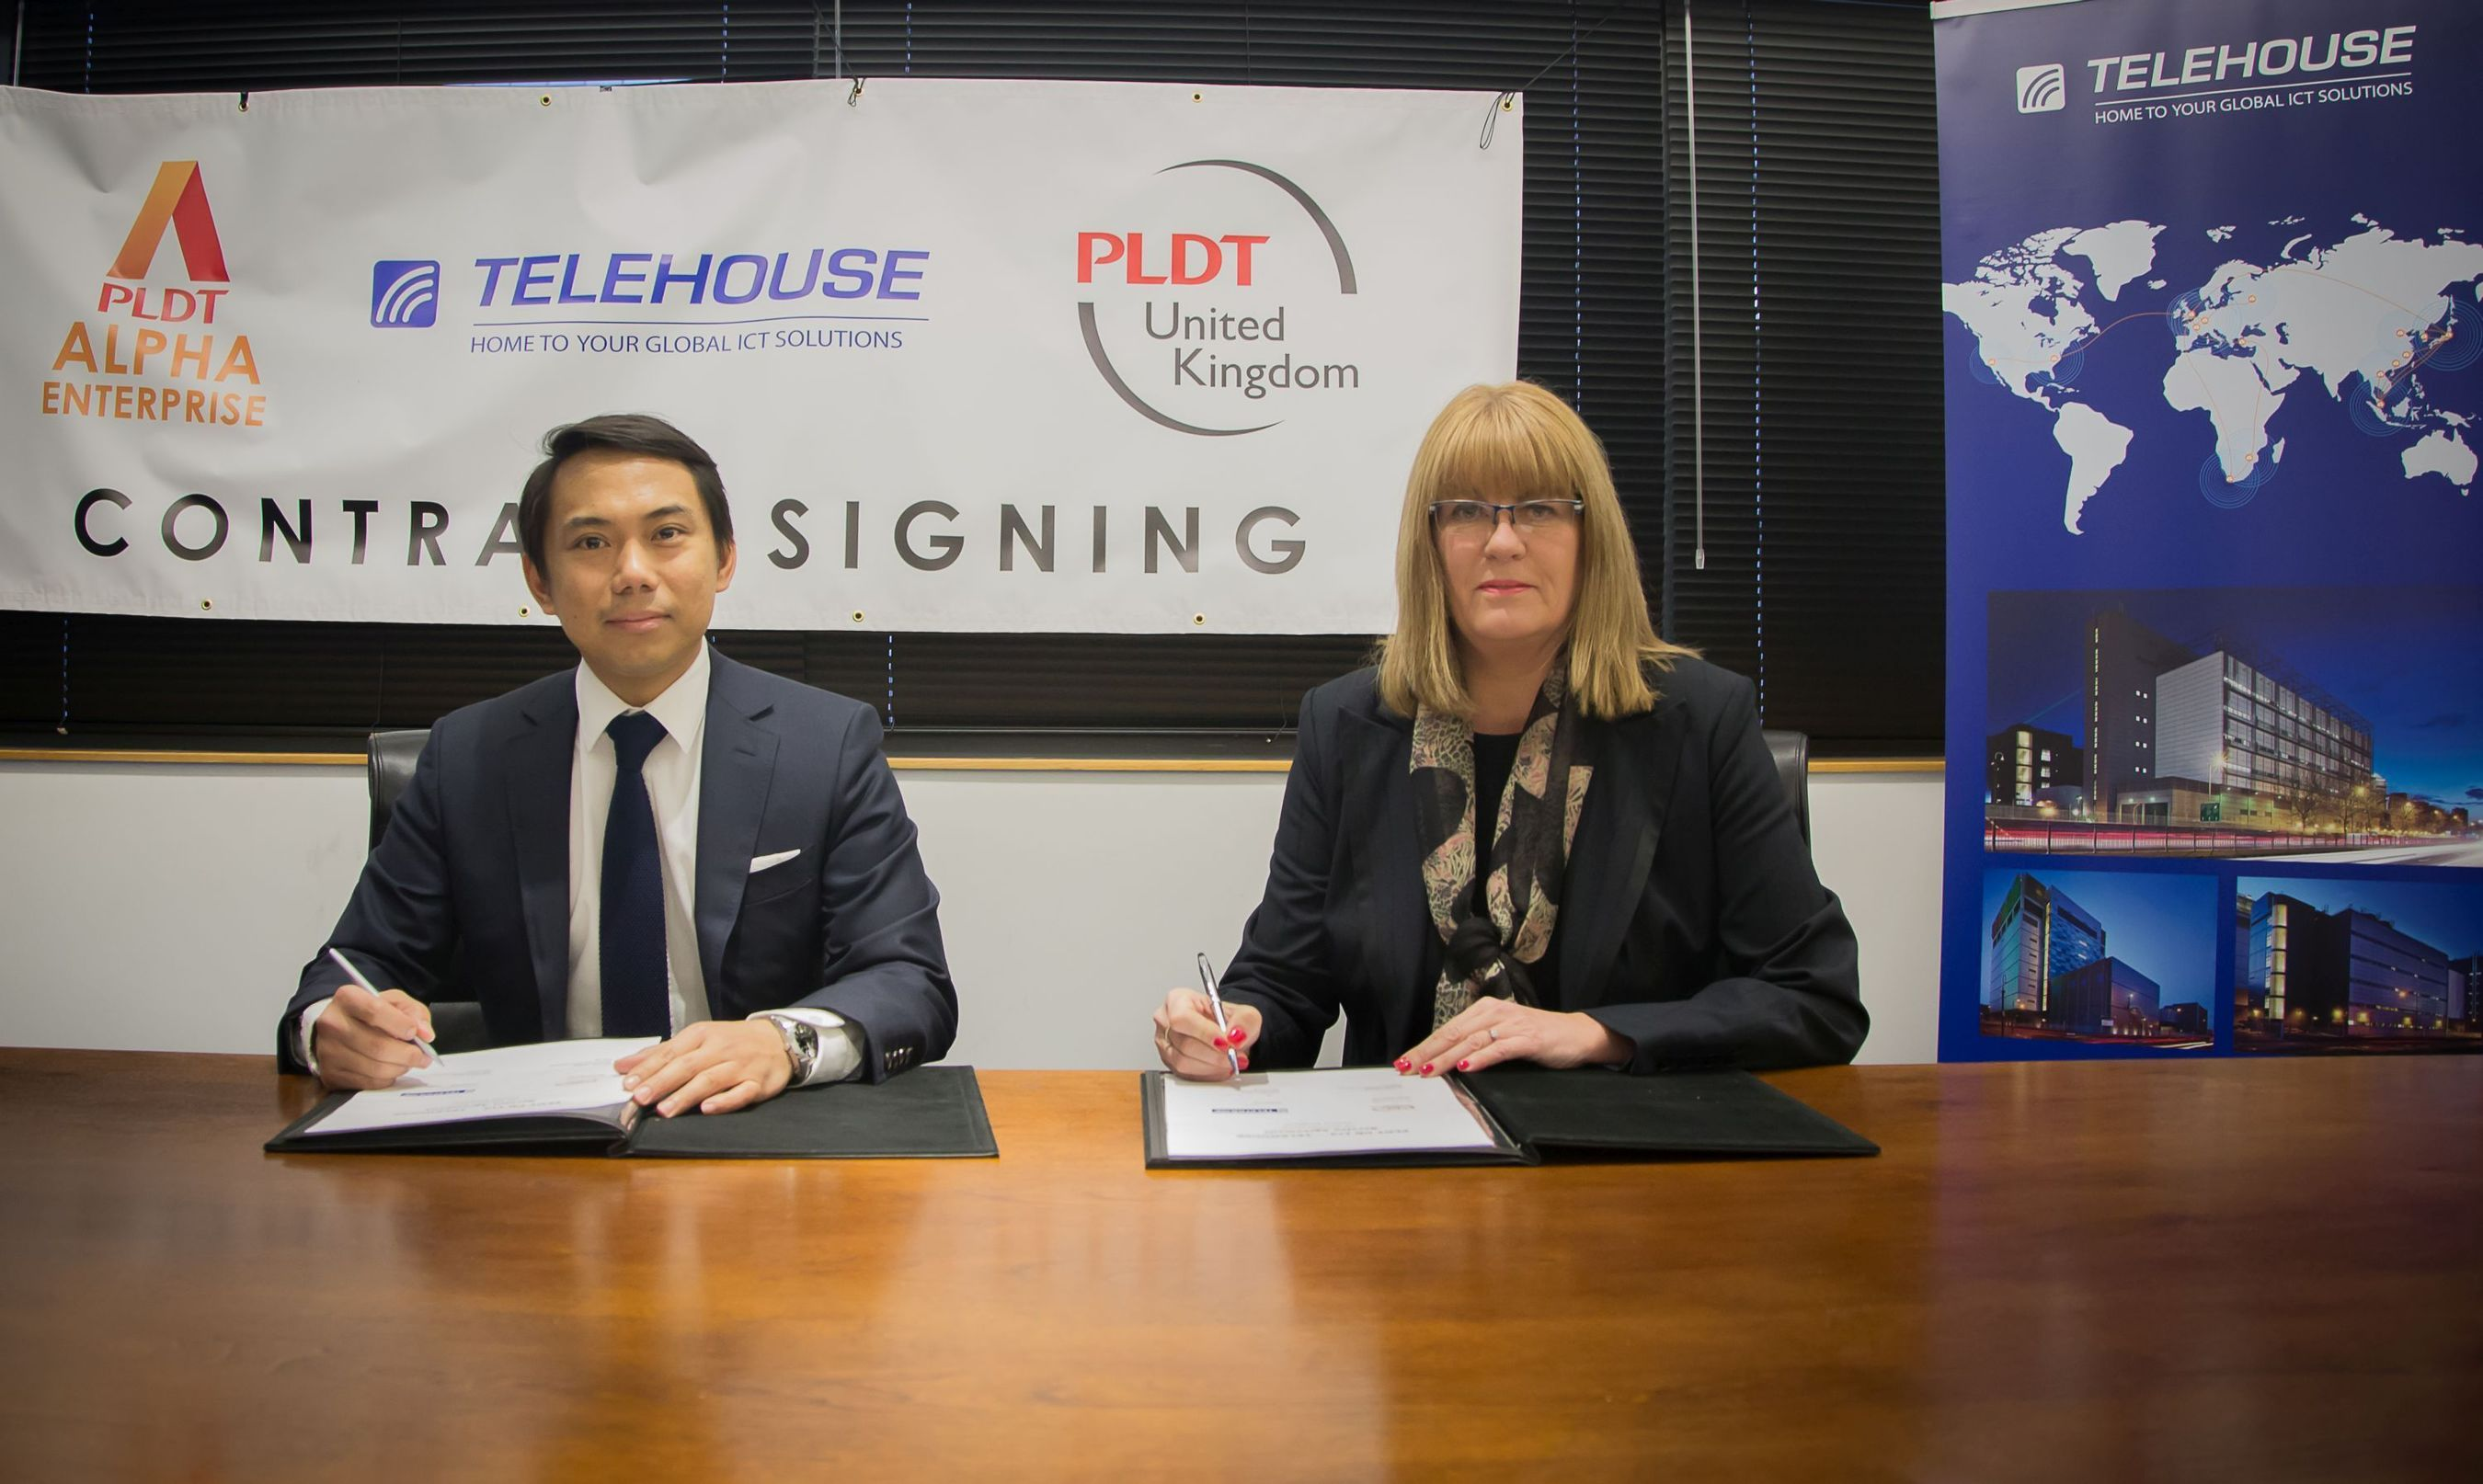 (L to R) Oliver Calma, General Manager at PLDT UK and Michelle Reid, Sales and Marketing Director at Telehouse, sign contracts. (PRNewsFoto/Telehouse)